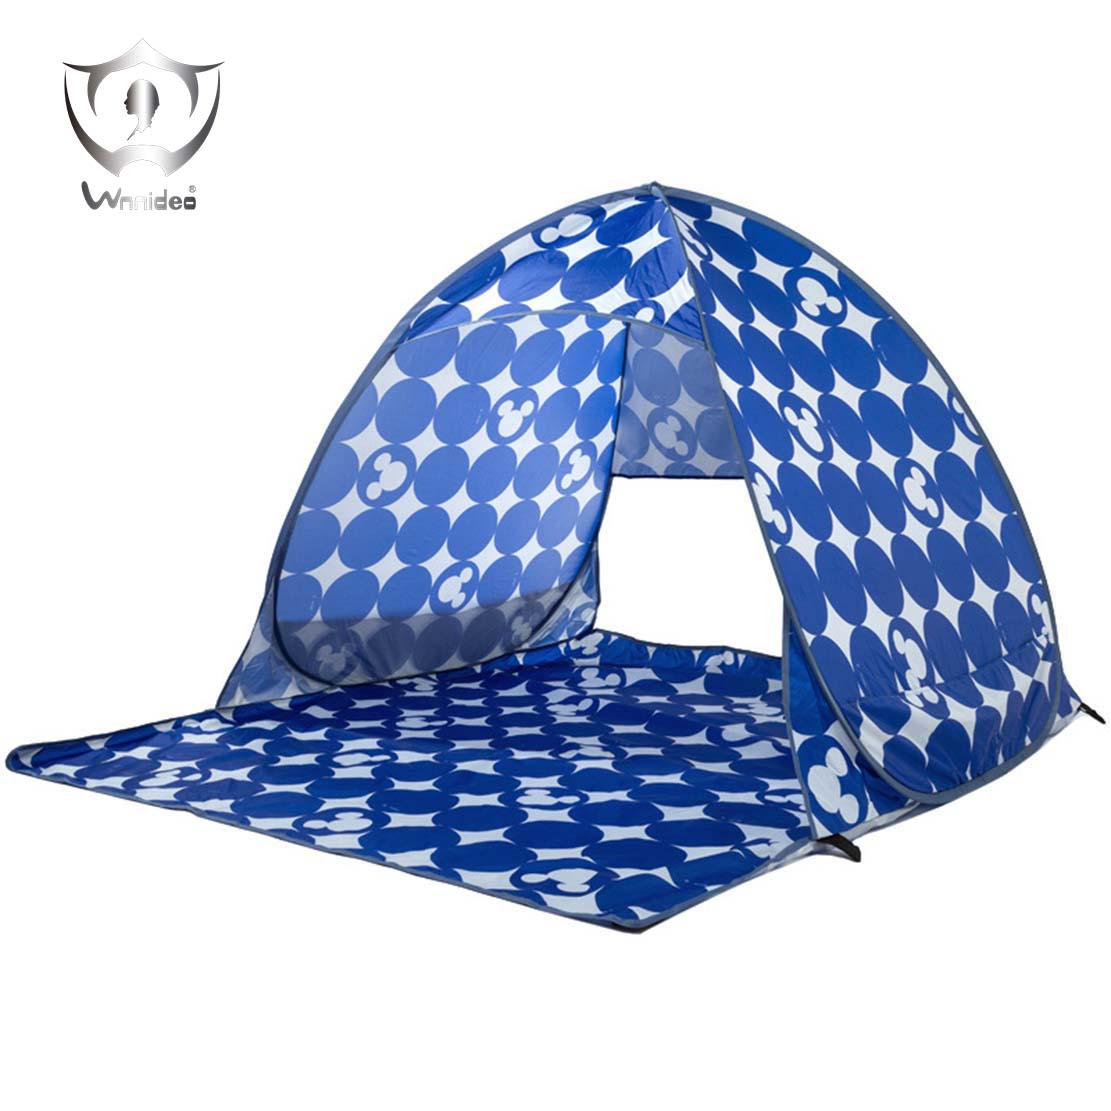 Automatic Pop Up Instant Portable Outdoors Quick Cabana Beach Tent Sun Shelter Anti Ultraviolet Fishing Tent outdoor summer tent gazebo beach tent sun shelter uv protect fully automatic quick open pop up awning fishing tent big size